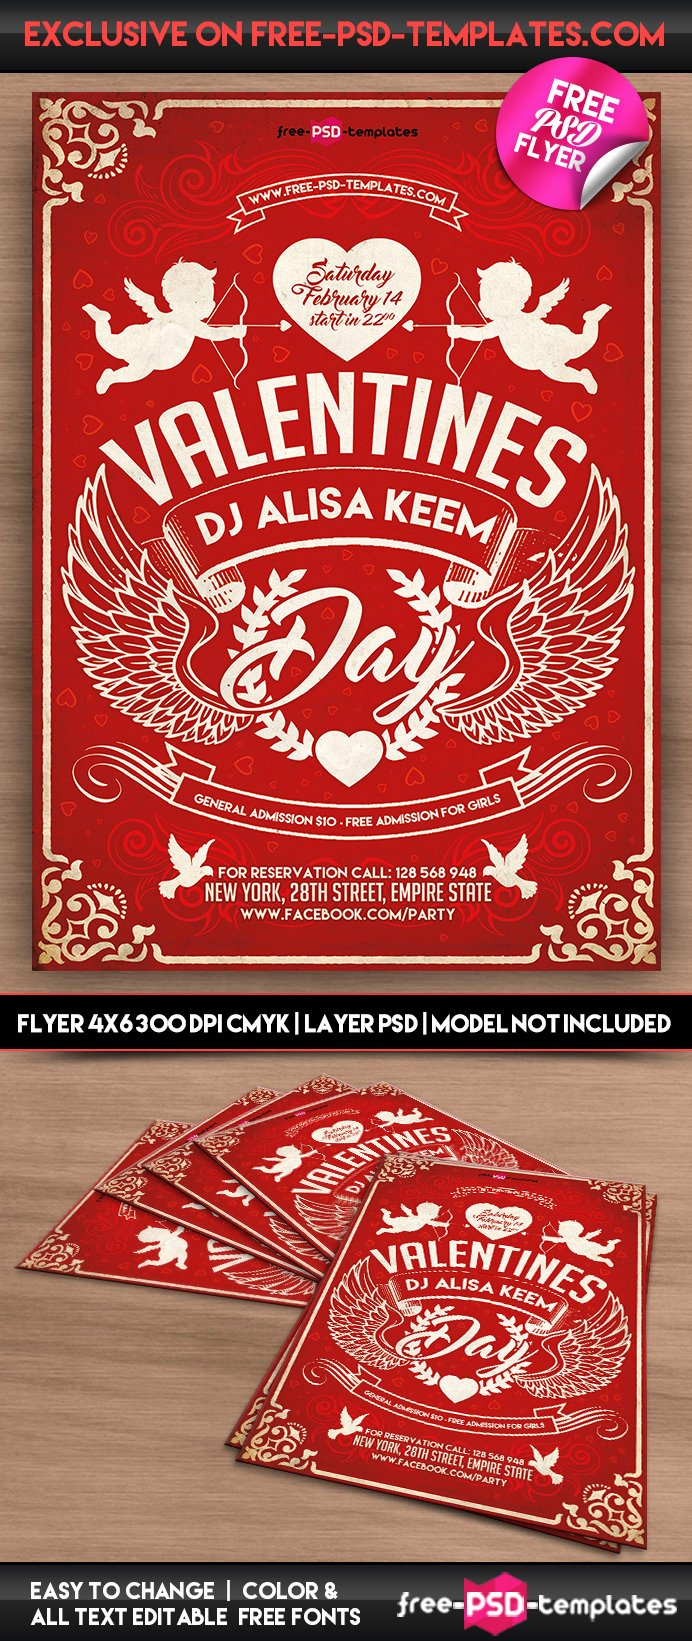 Valentines Day Flyer Template Free New Valentines Day Free Psd Flyer Template